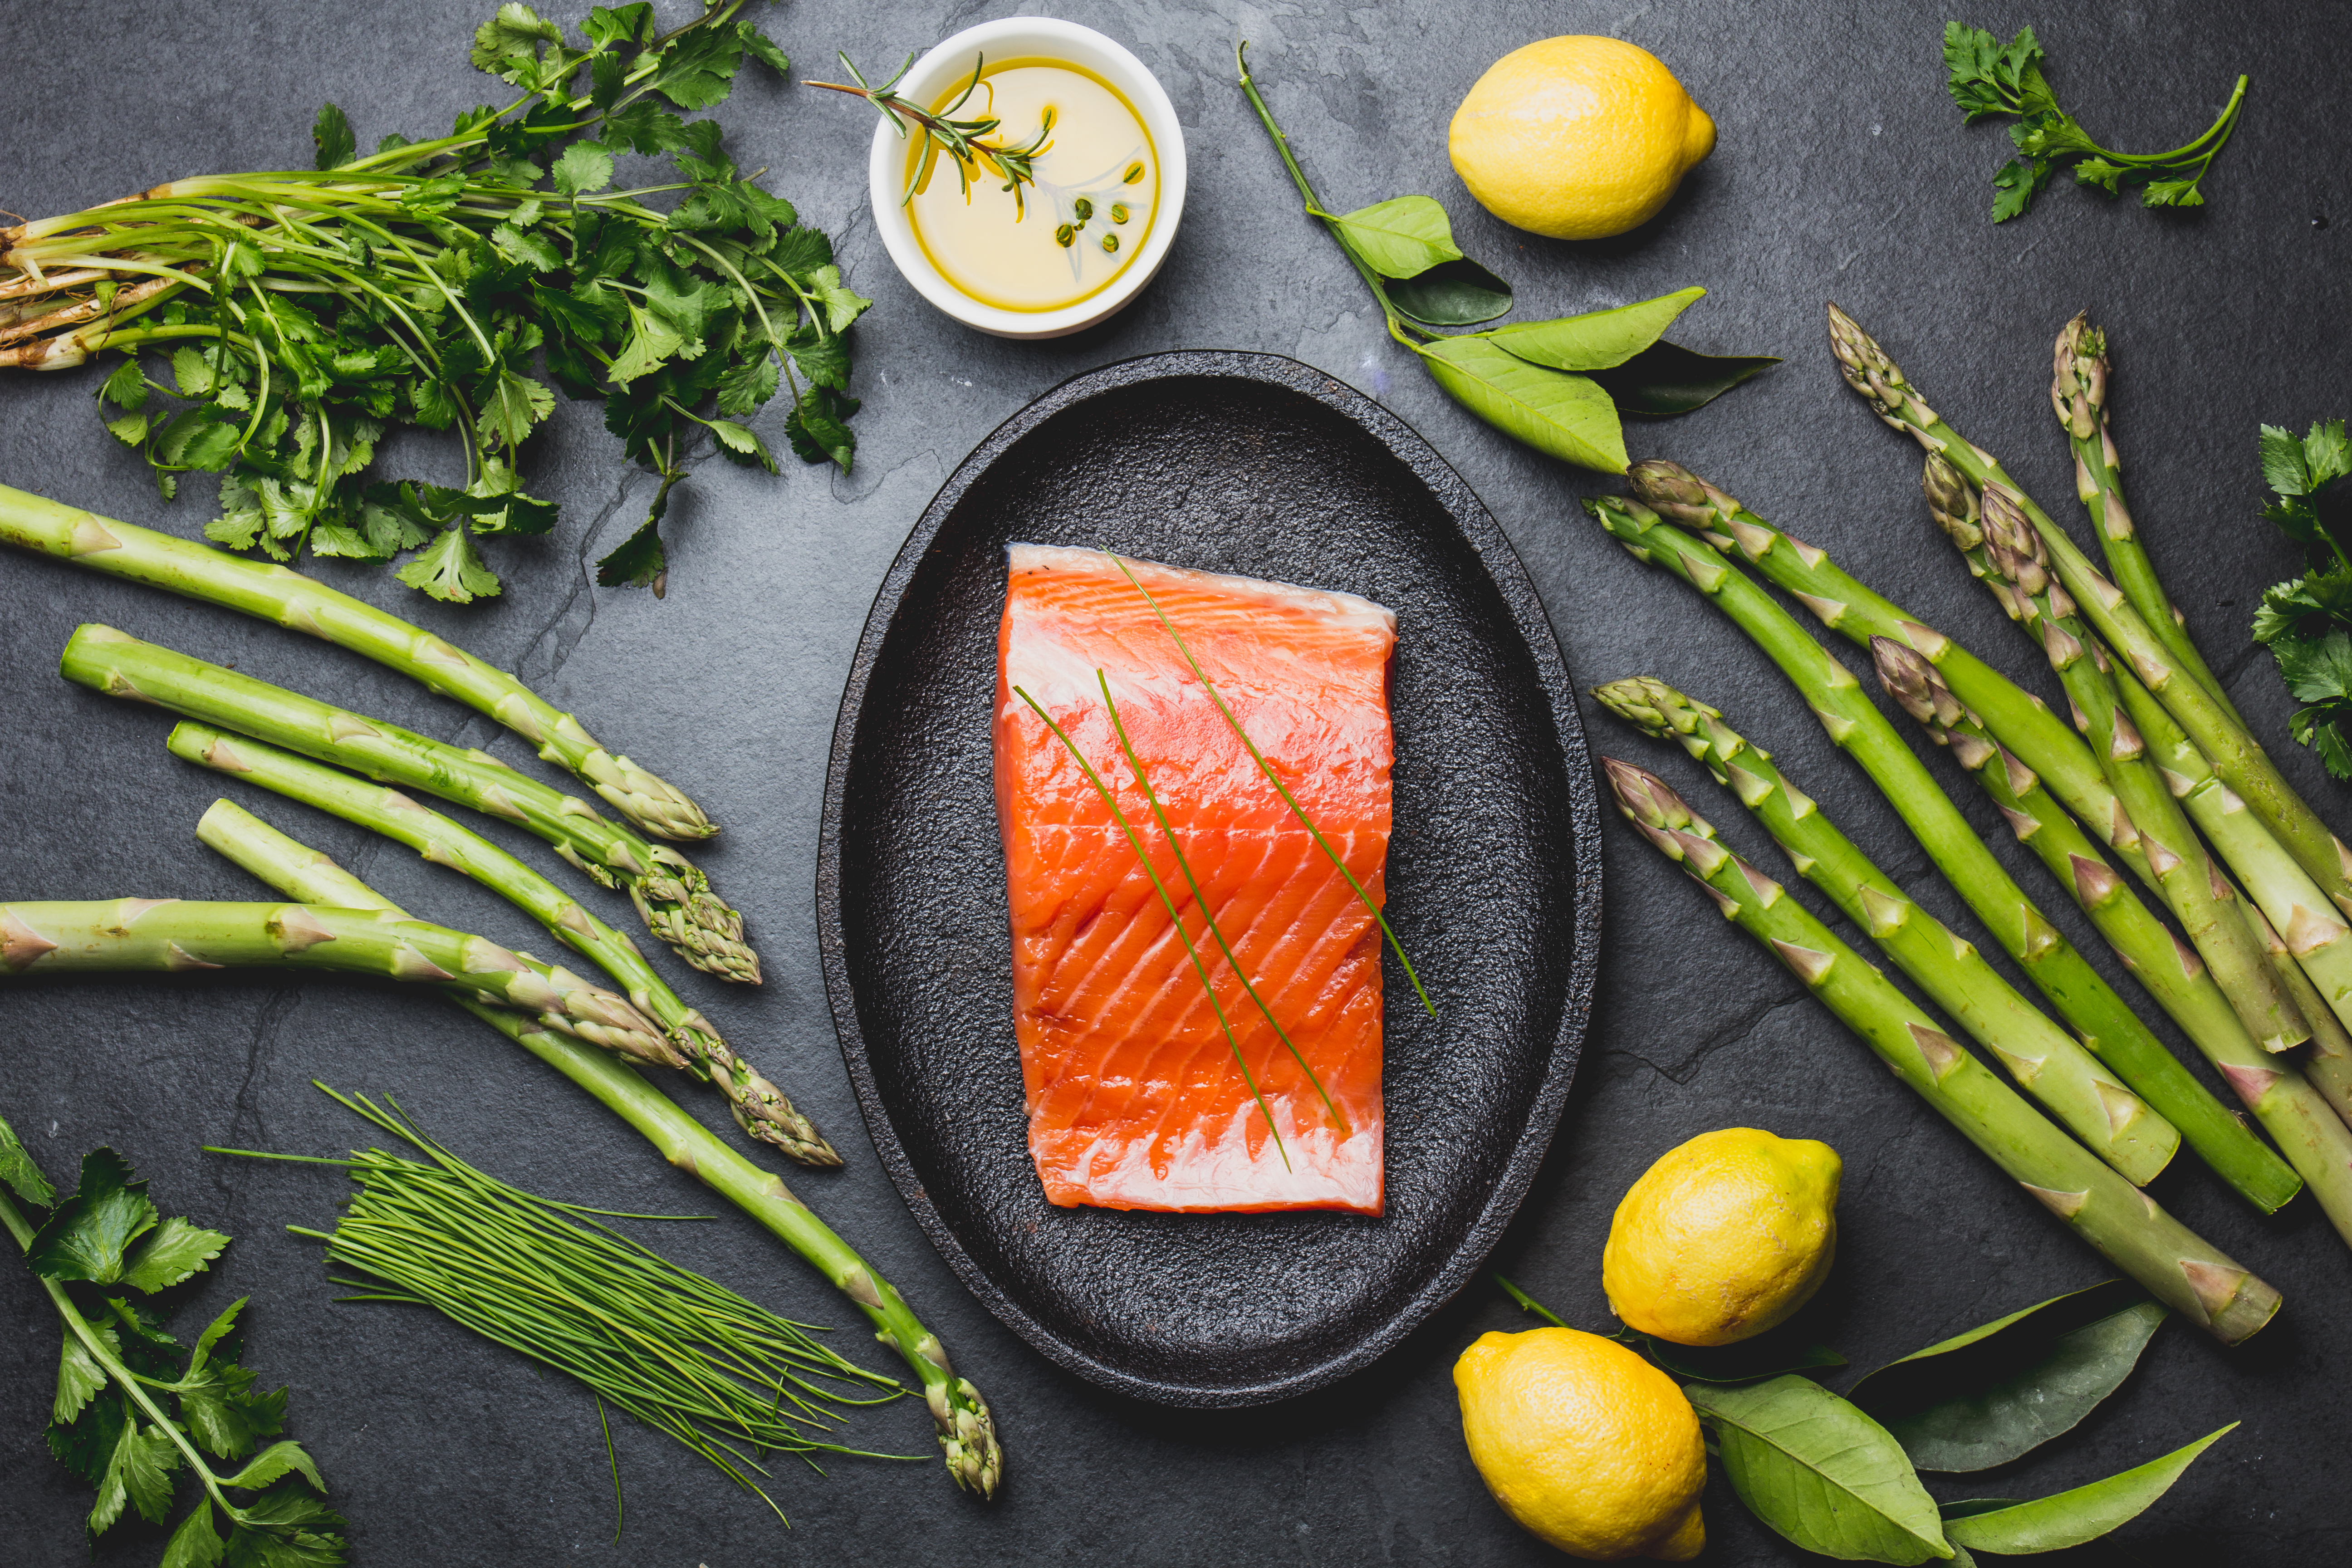 ingredients-for-cooking-salmon-asparagus-herbs-SP4NKHM (1)